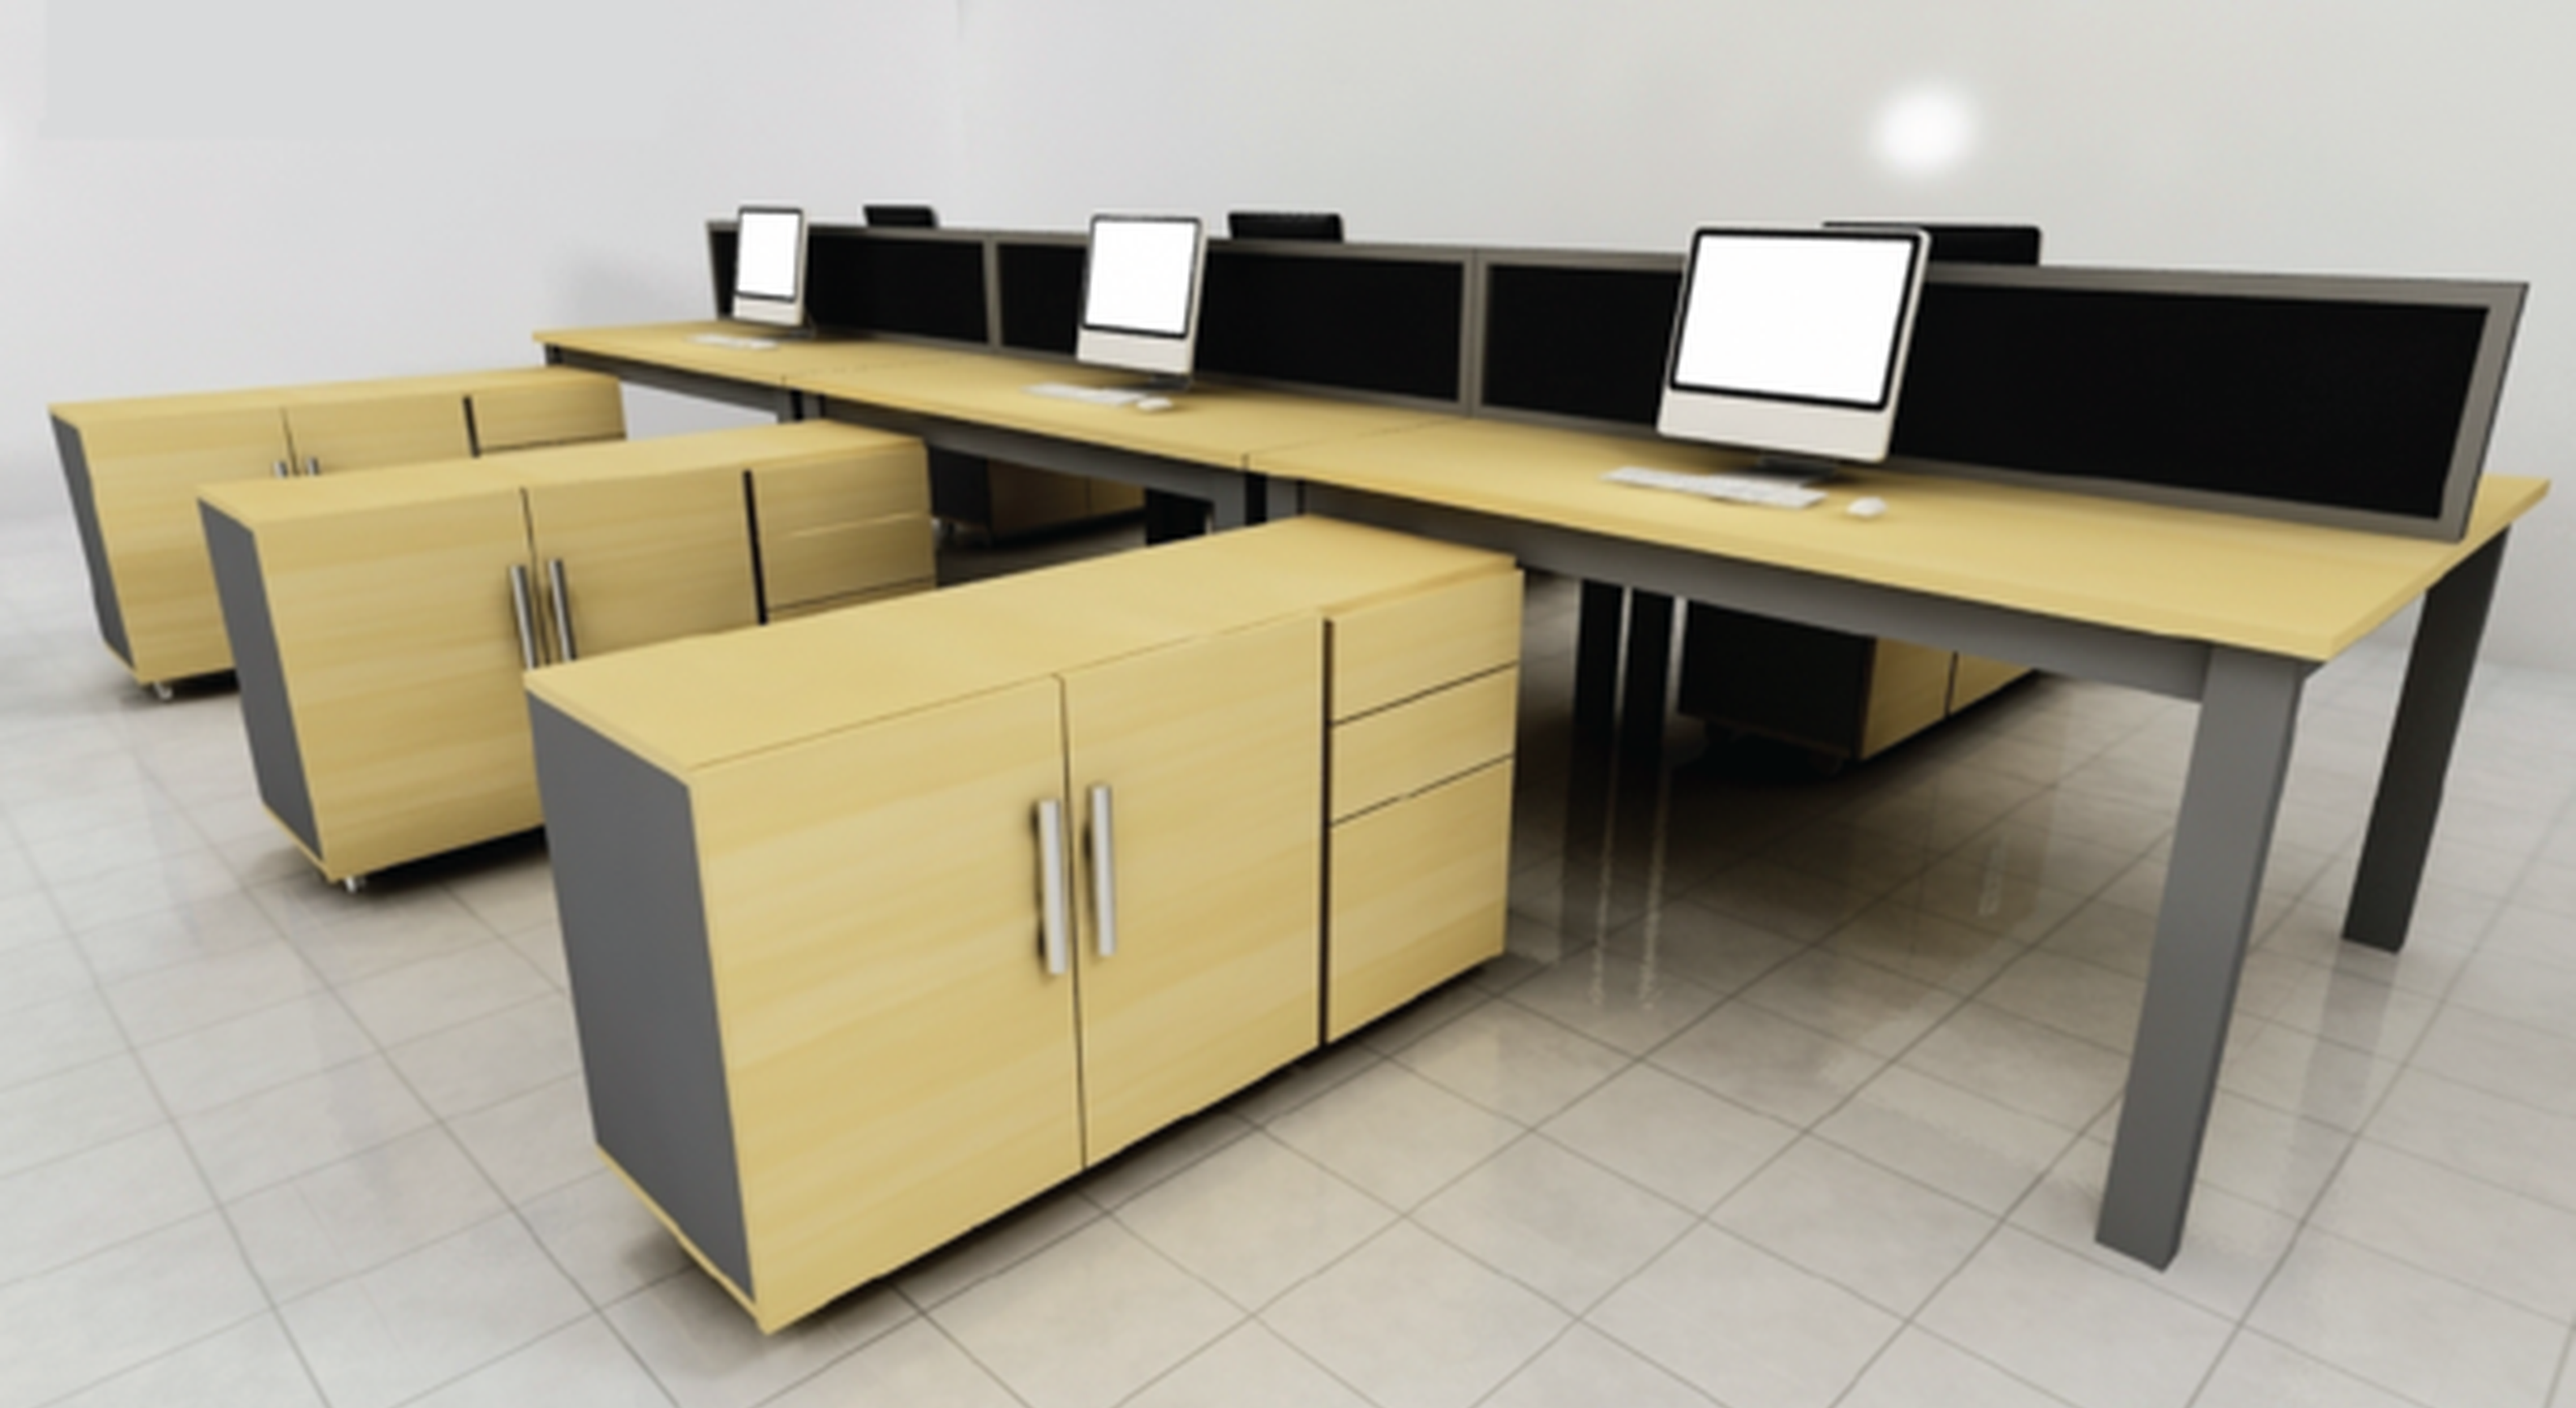 The Above Considerations In Planning A Work Space Guide Differ From Work  Stations To Stations And Purposes But Working With The Basics That Cuts  Across All ...